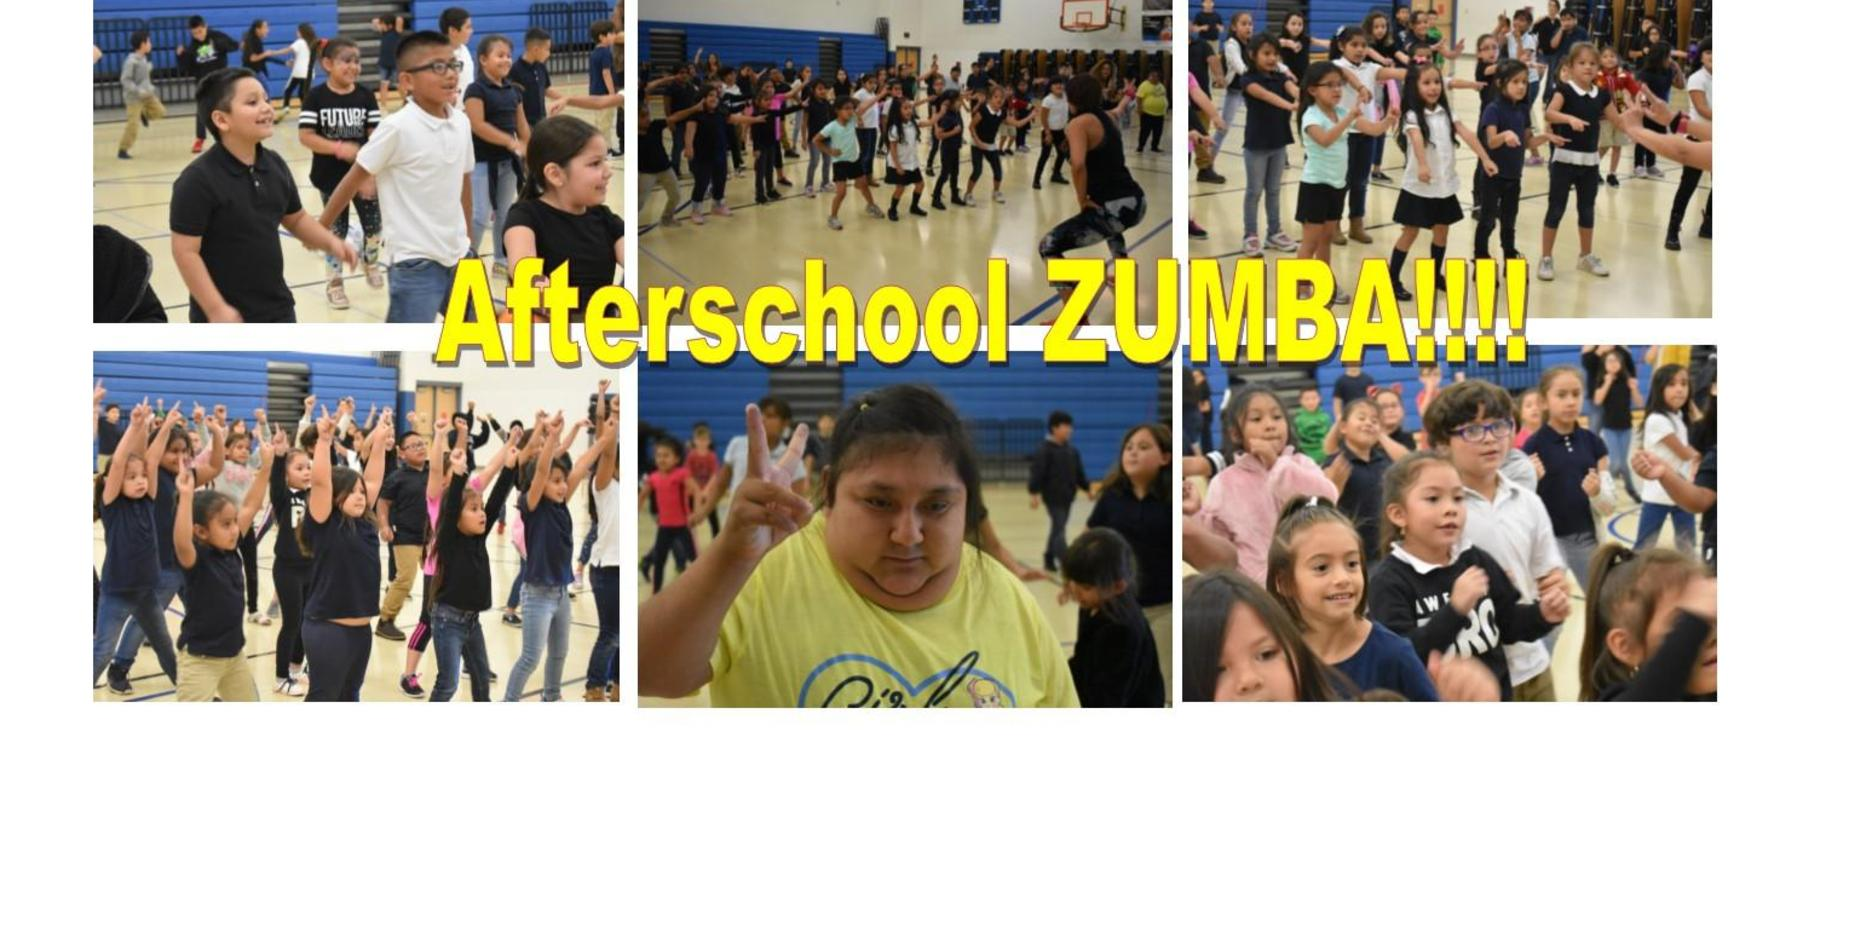 Afterschool Zumba!  Students are dancing and working out with an instructor!  All are smiling and having so much fun!